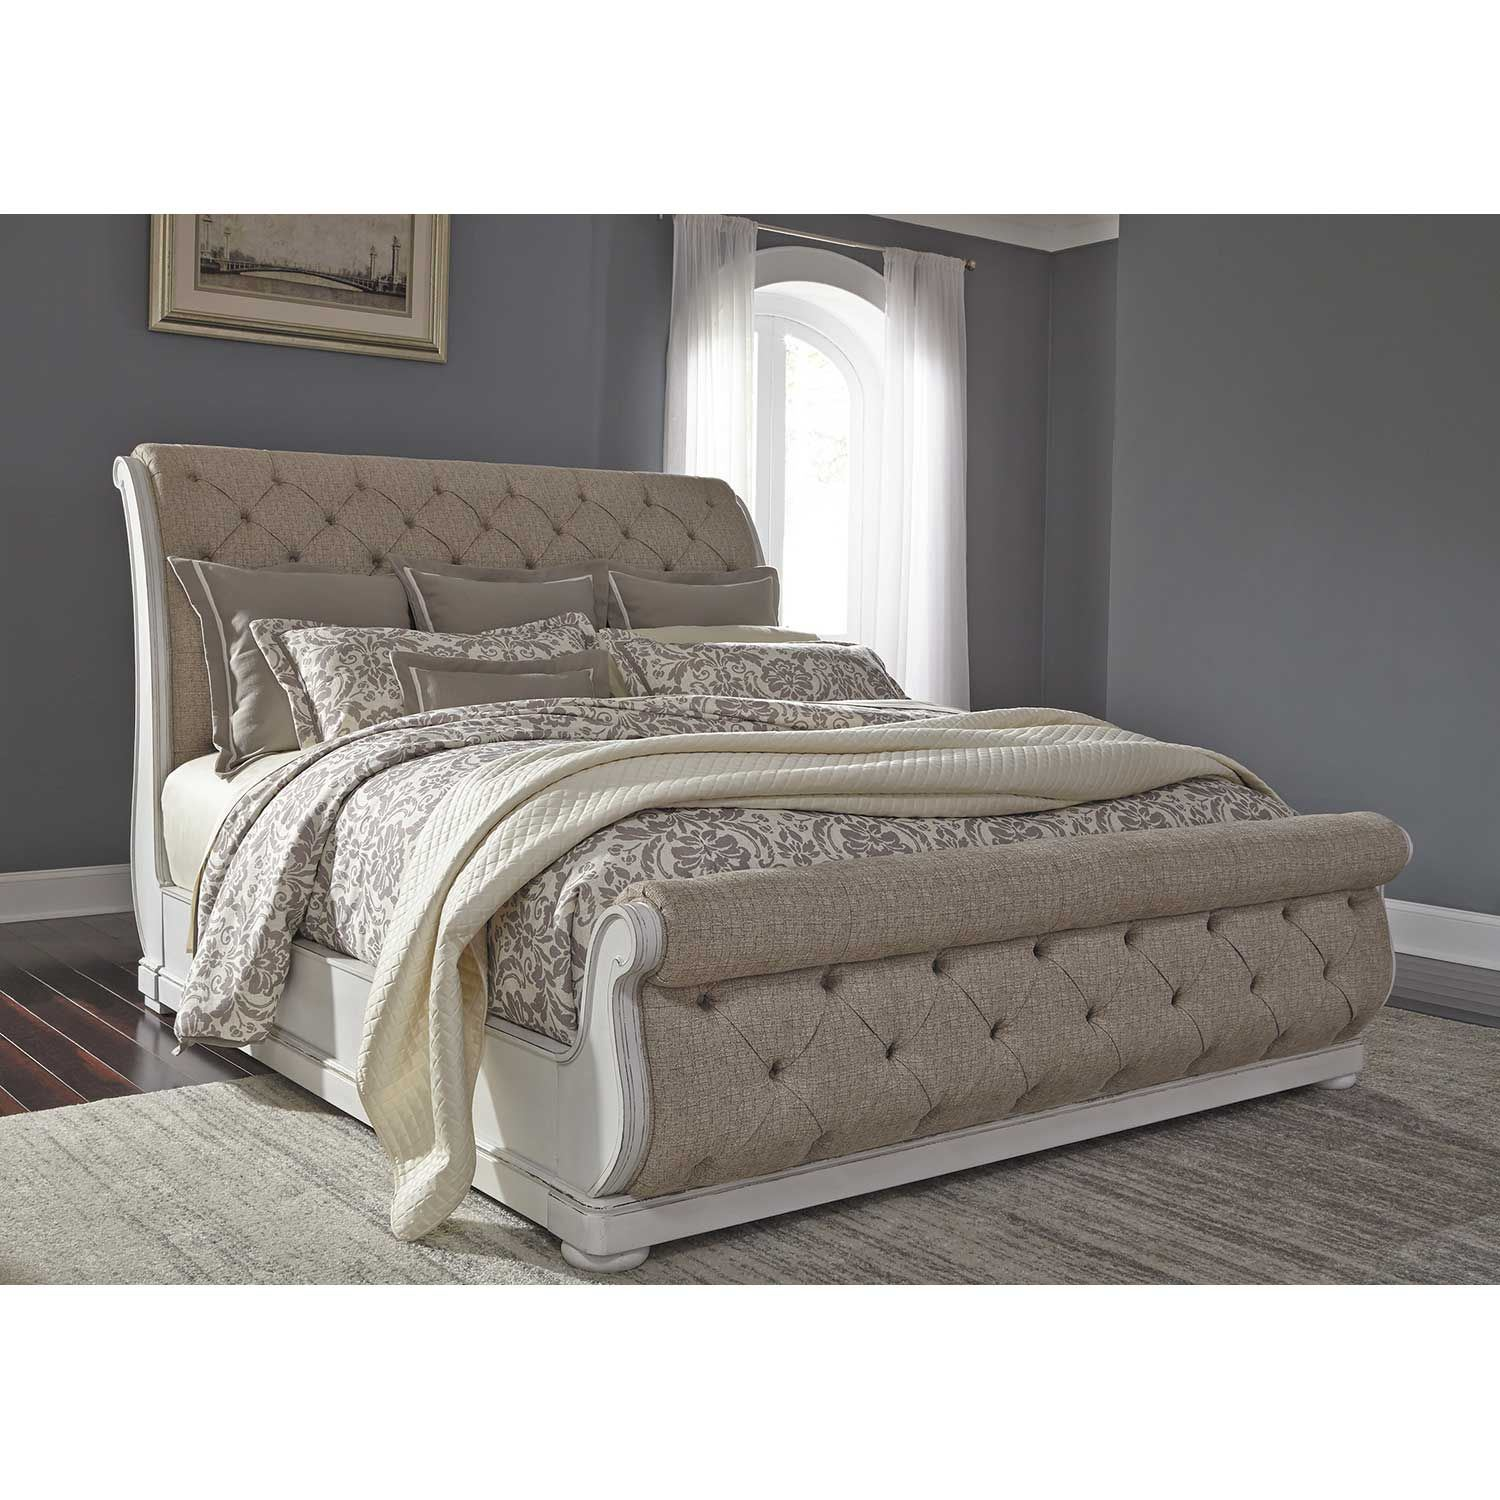 Picture of Magnolia Manor King Upholstered Sleigh Bed